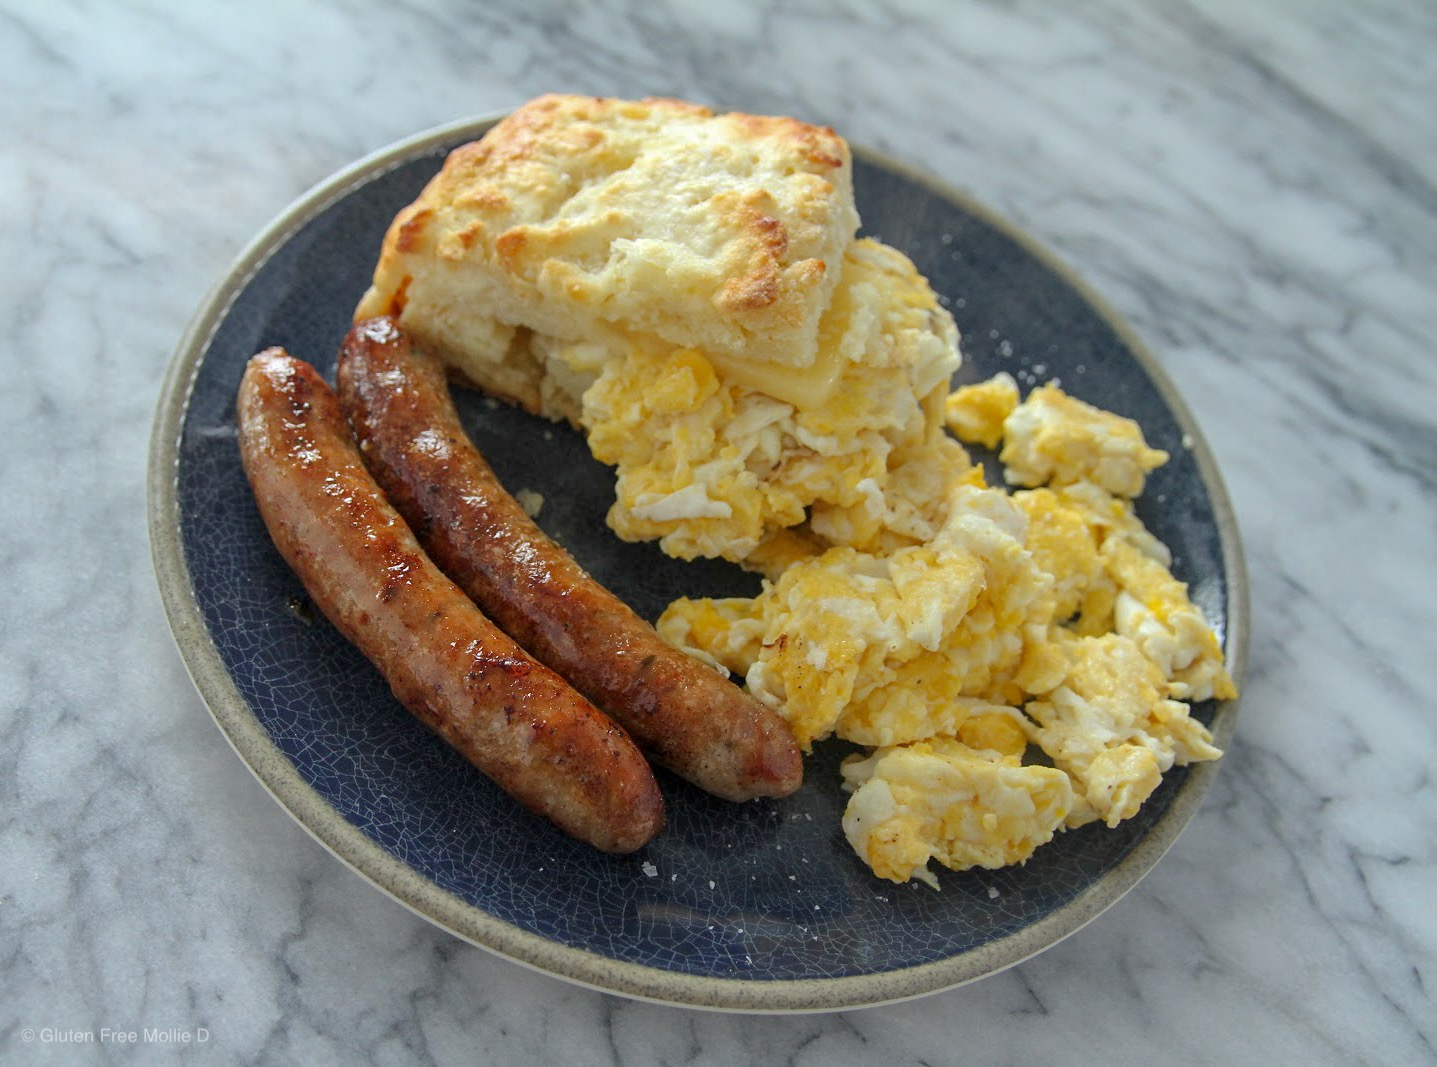 Seth's epic biscuit breakfast. Yes, there's cheddar and scrambled eggs in the biscuit. And those breakfast sausages? YUM.